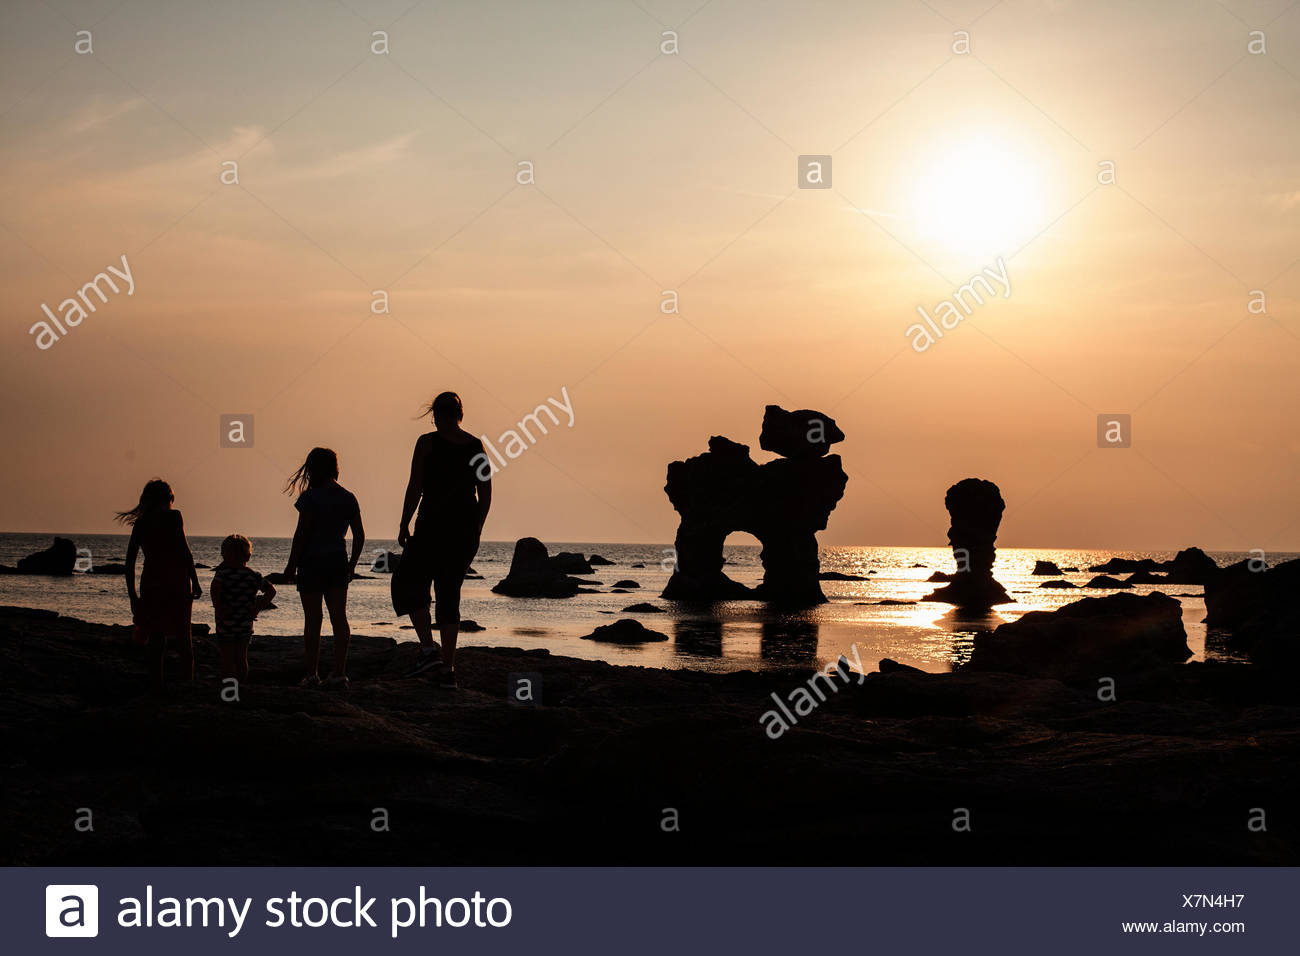 Sweden, Gotland, Faro, Gamle hamn, Silhouette of mother and children (2-3, 8-9, 10-11) on beach at sunset Stock Photo